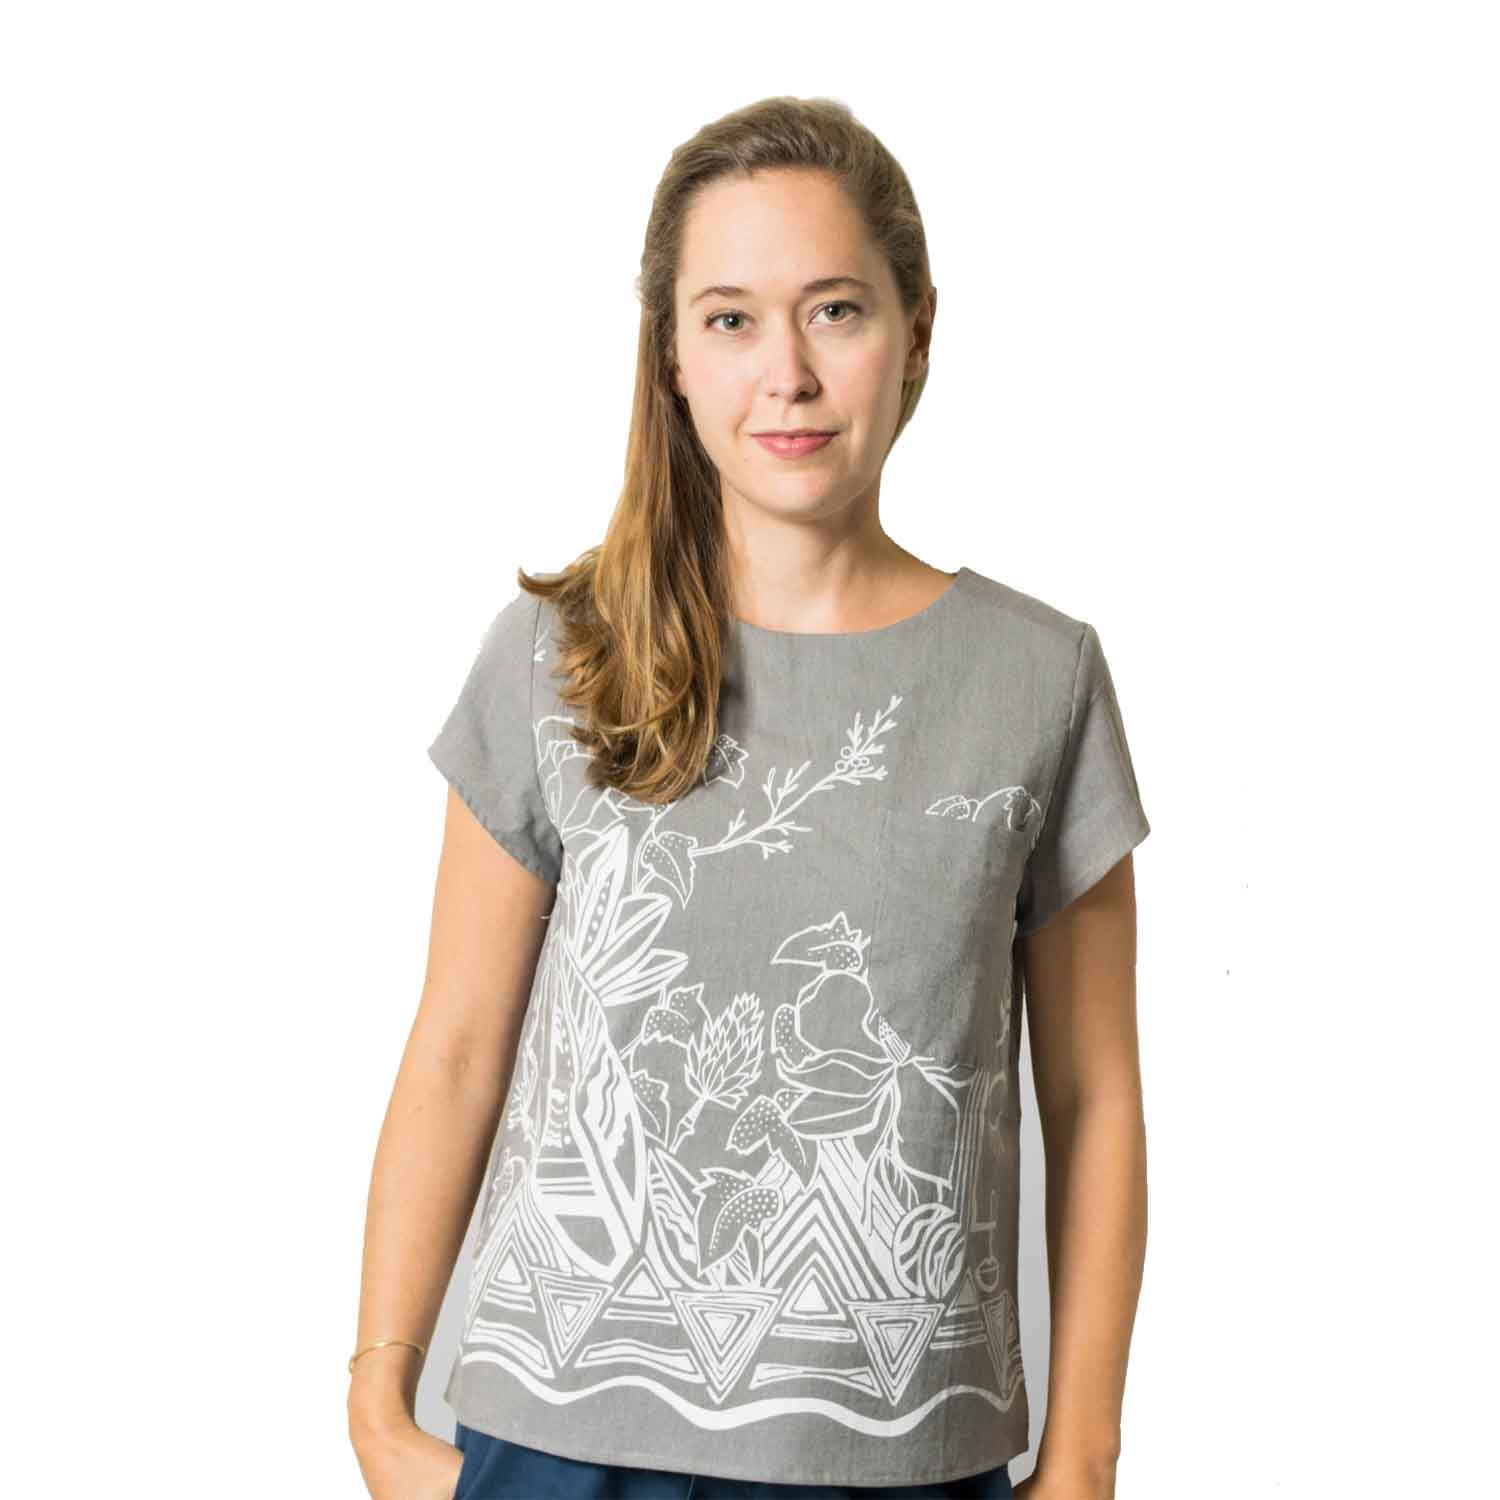 Grace Top ,  Pamut Apparel  $86  *use code  Sustainablychic15  for 15% off*